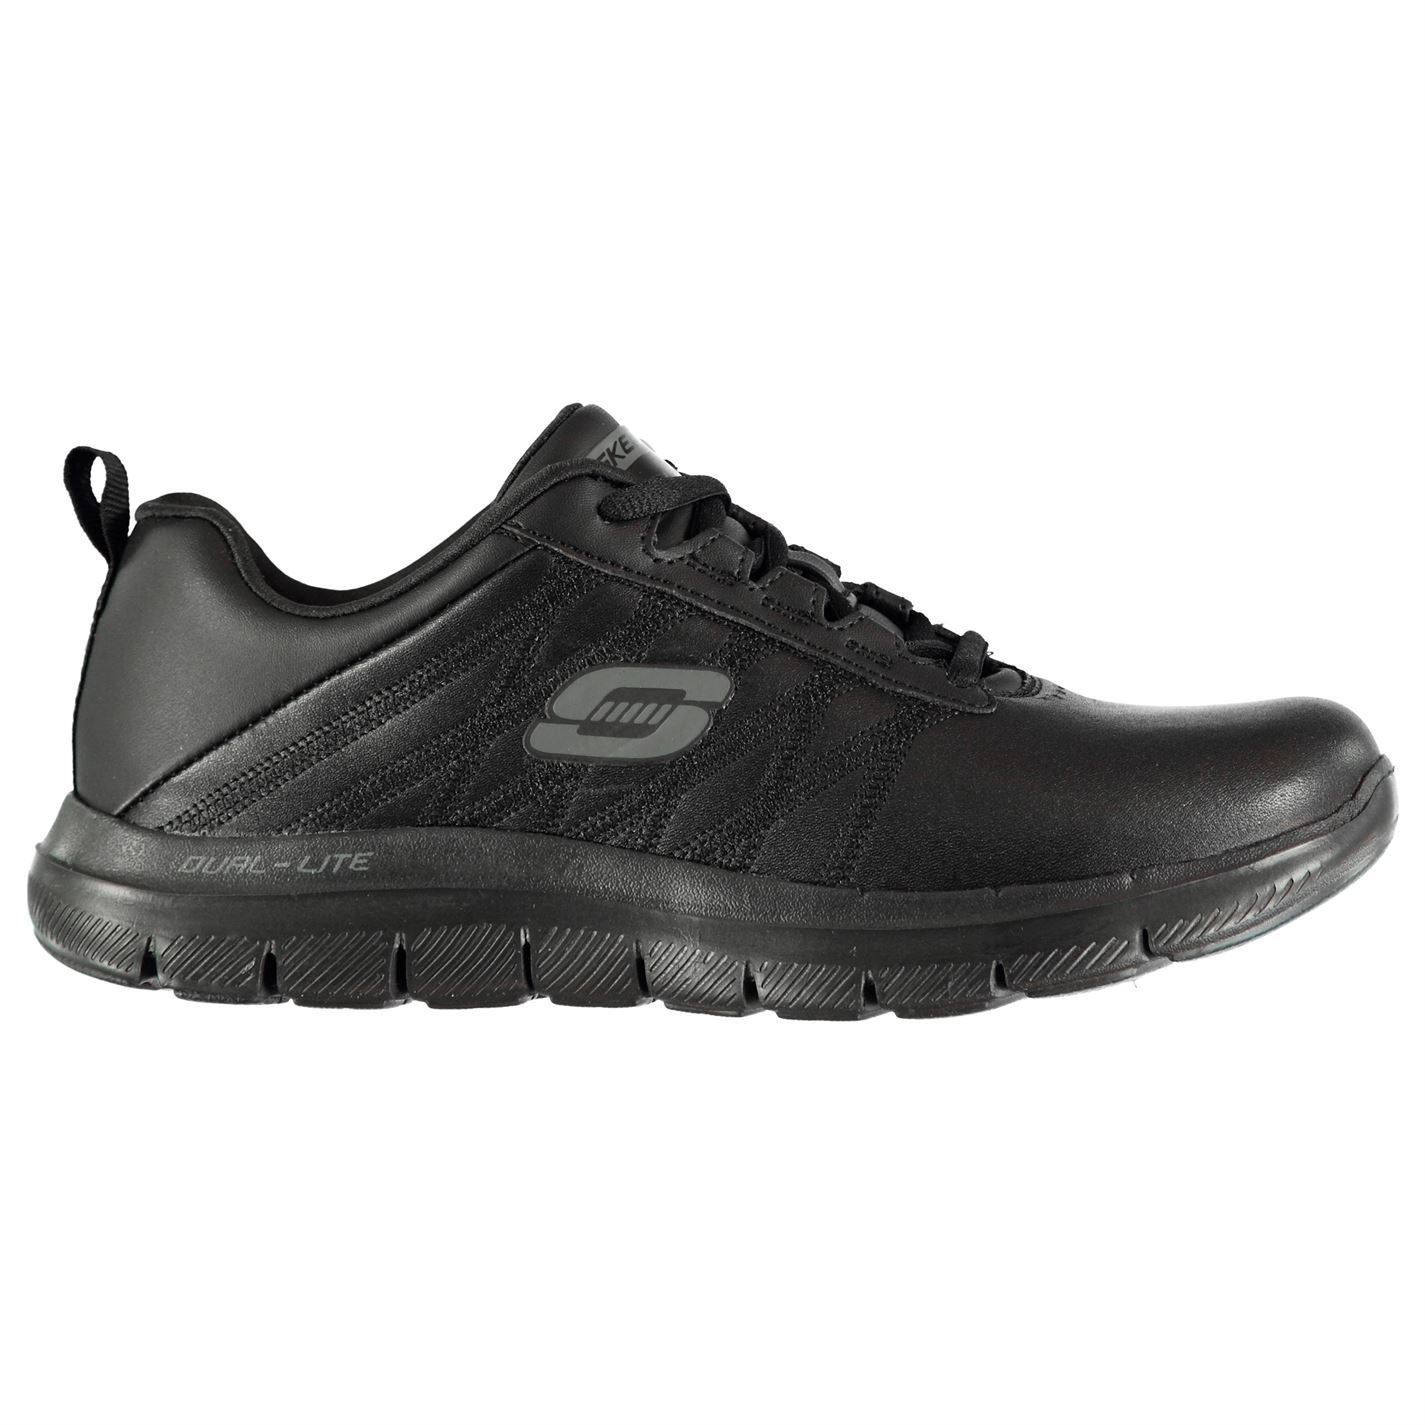 Skechers Damenschuhe Flex Appeal 2.0 Trainers Runners Lace Up Padded Ankle Collar